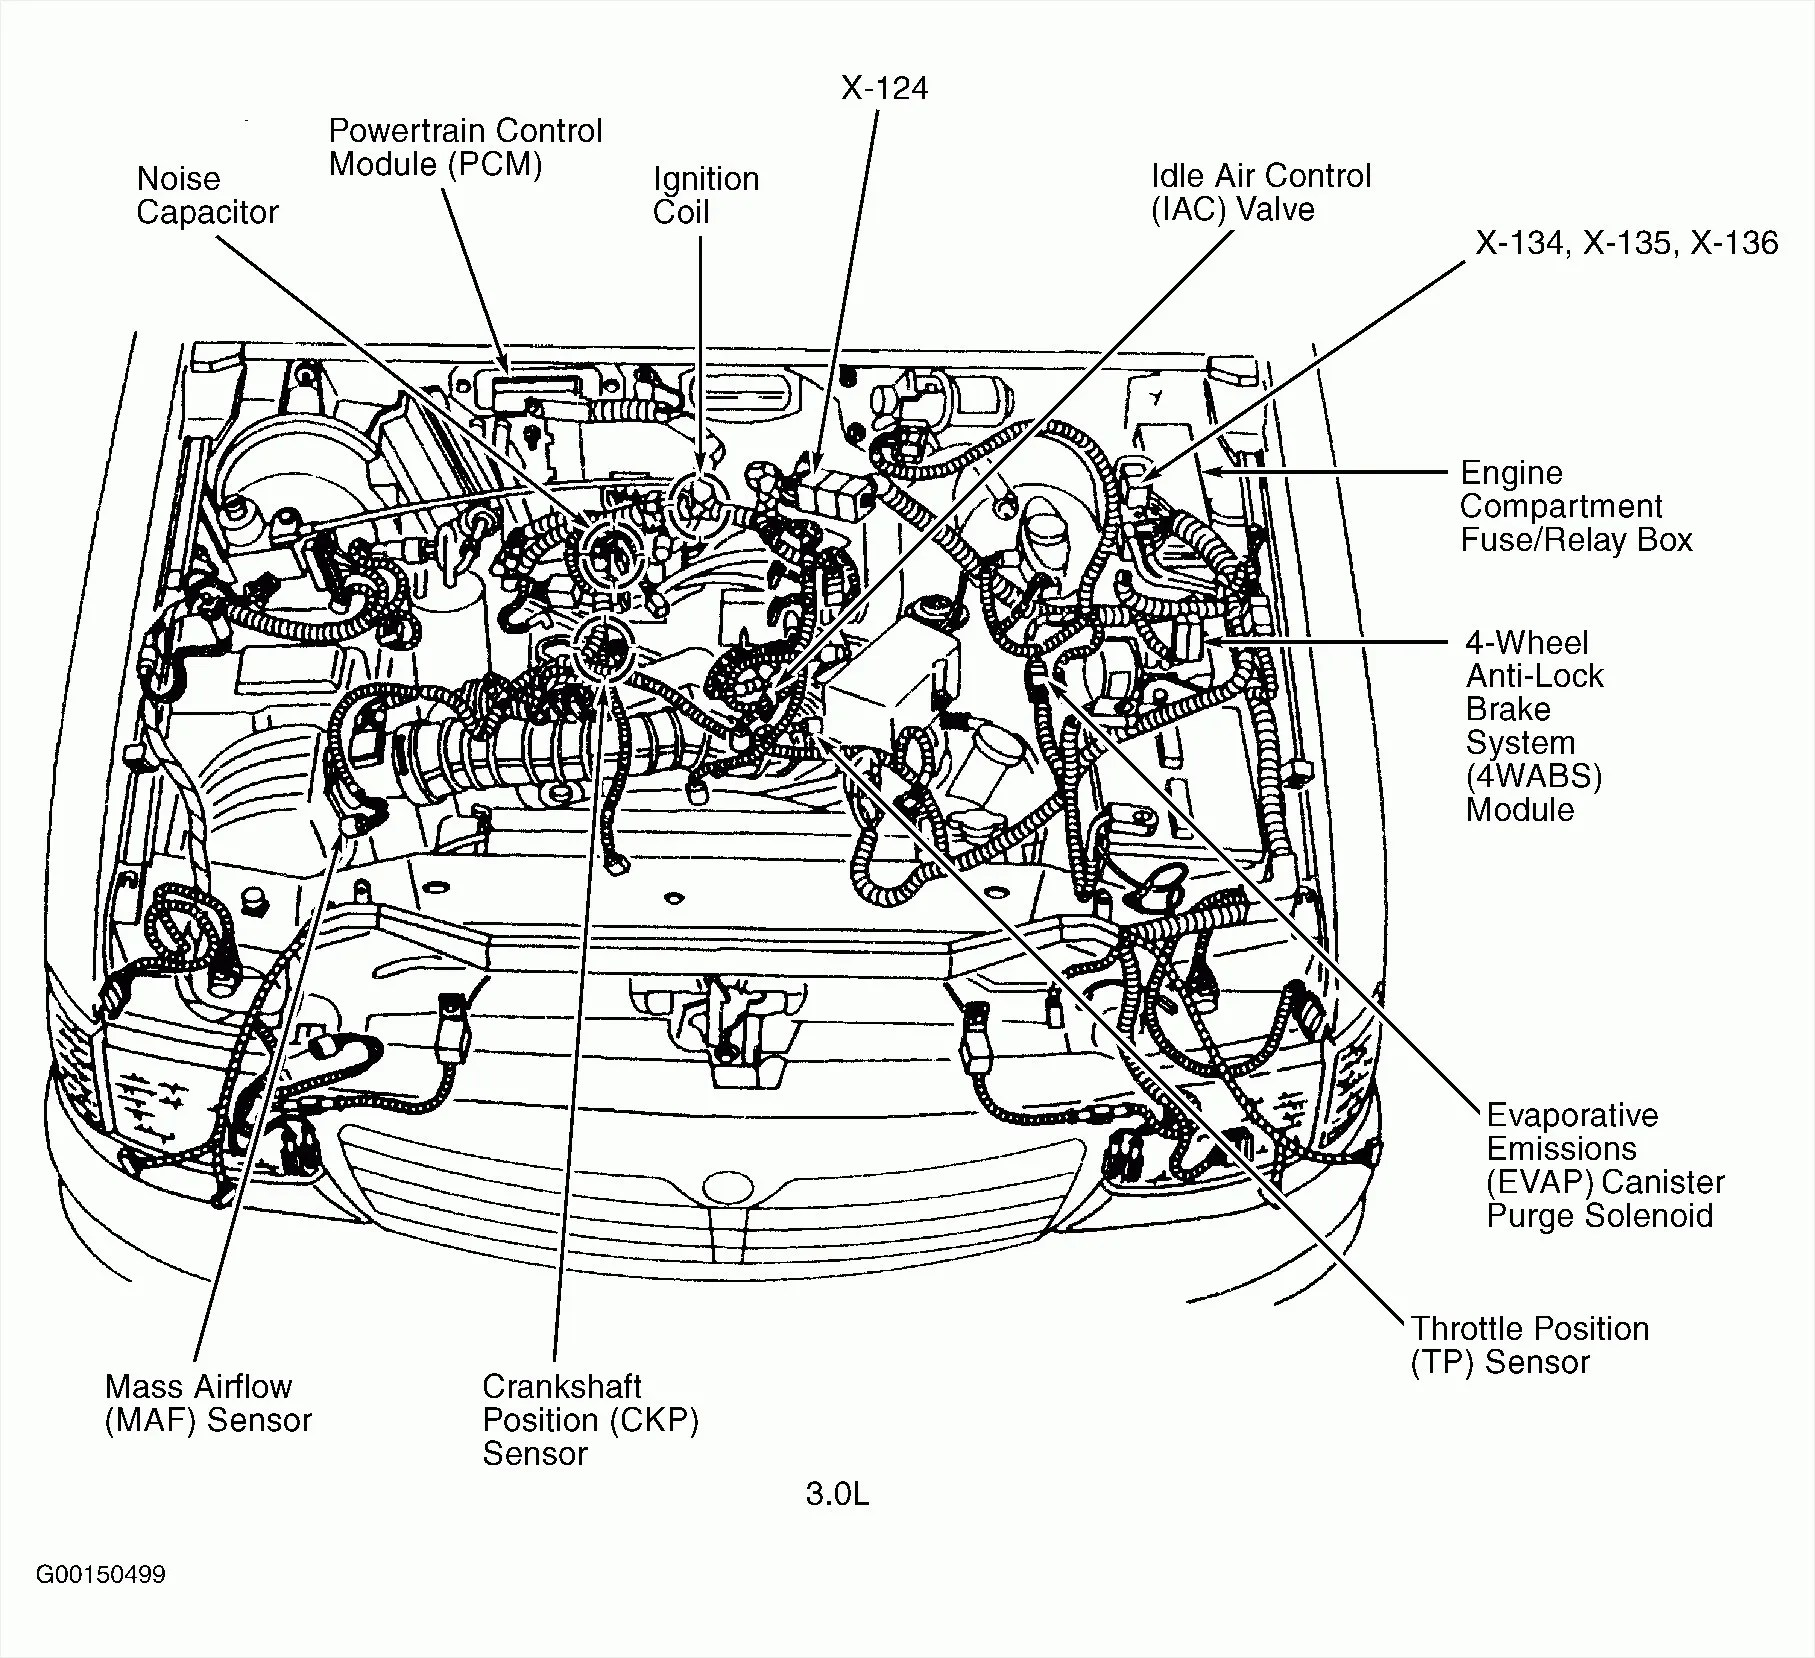 hight resolution of 2005 ford focus engine compartment diagram wiring diagram datasource e39 engine compartment fuse box